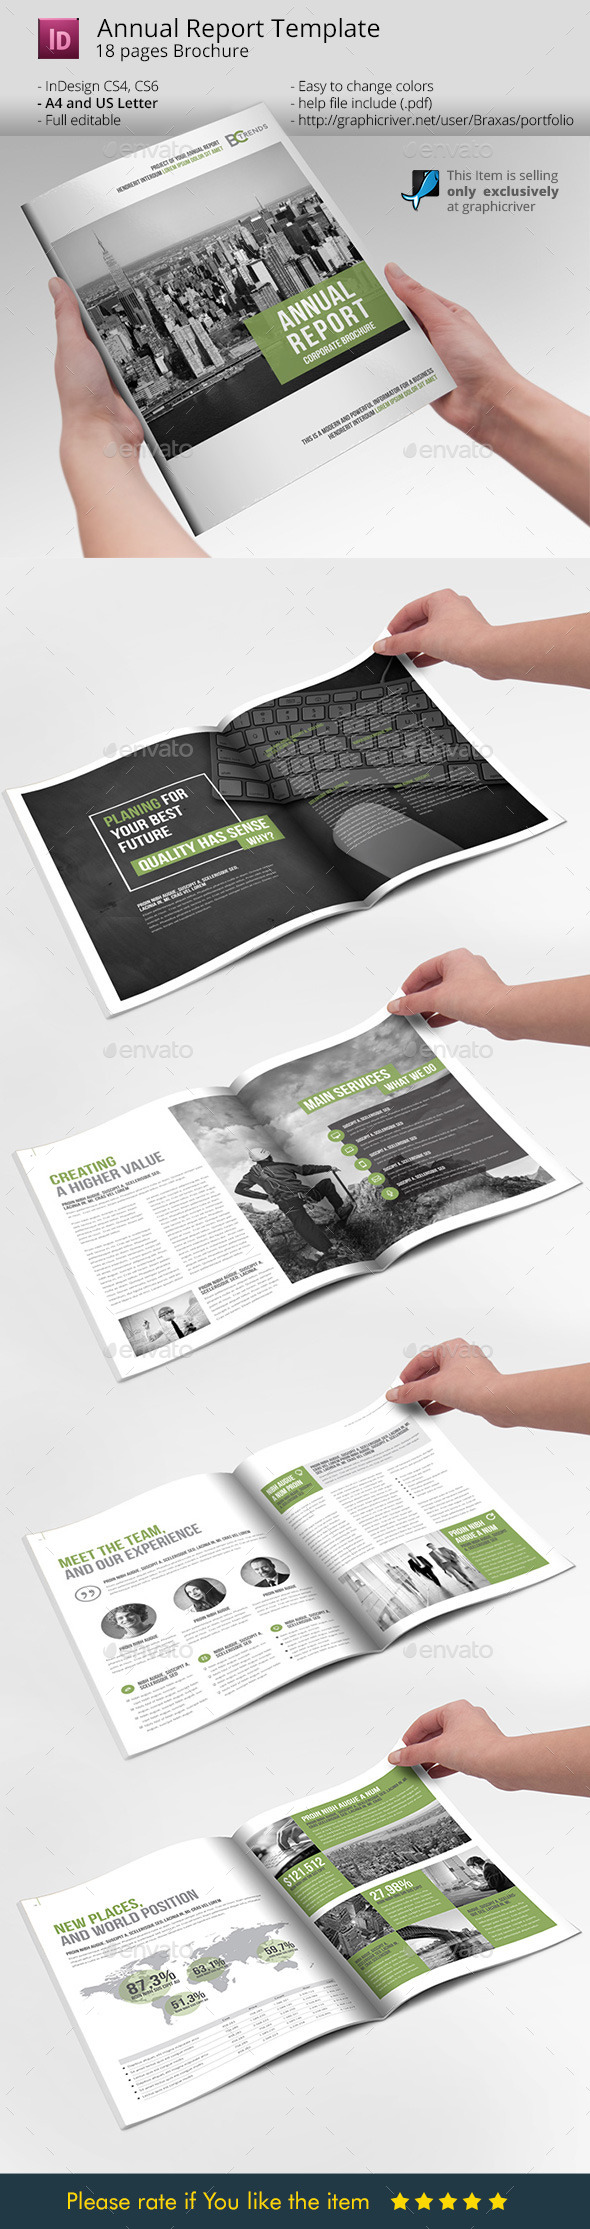 Annual Report Business Brochure Template - Informational Brochures